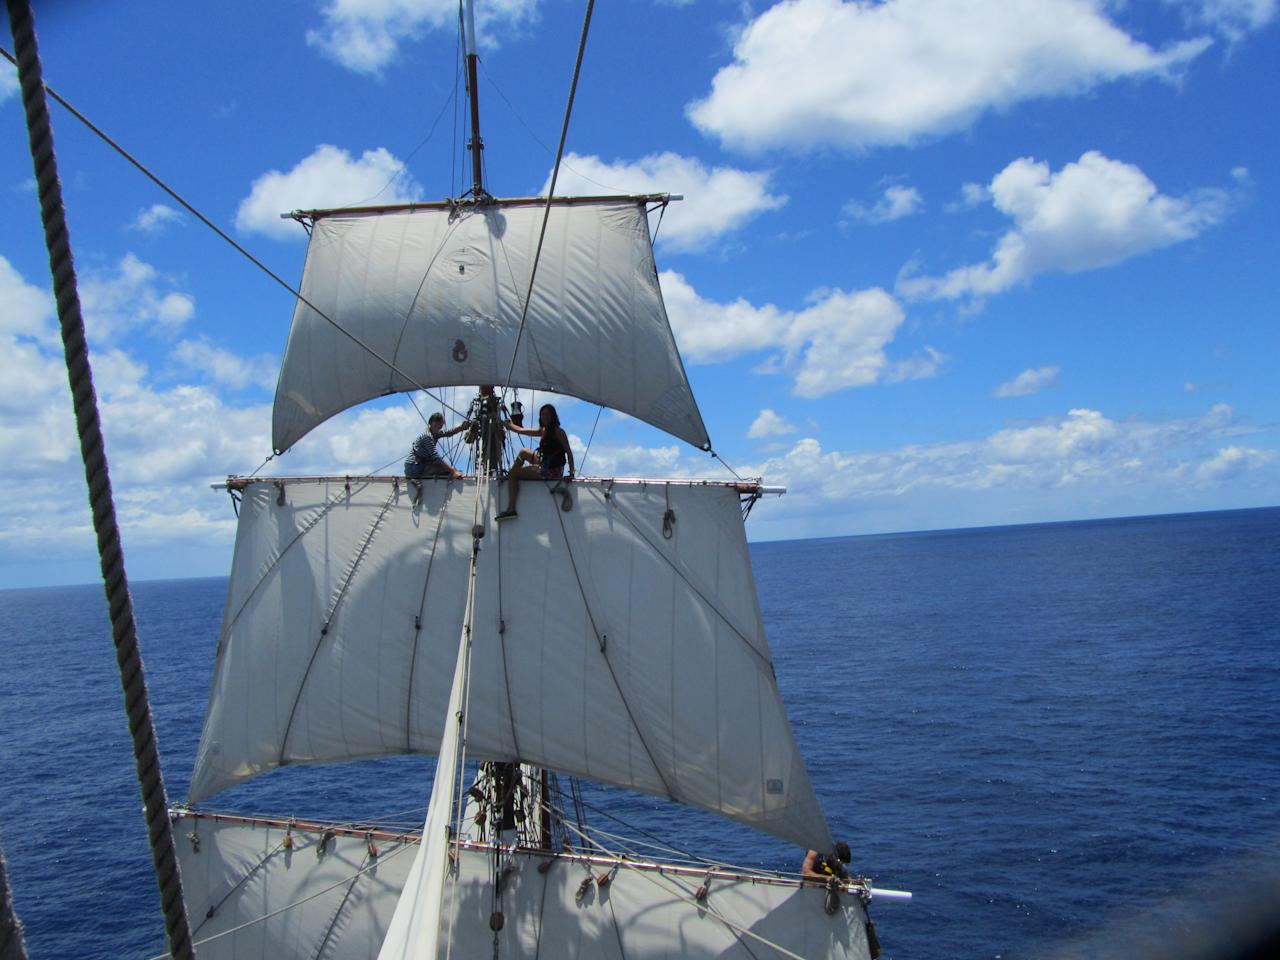 "<p>How about learning to sail – and then crossing the equator as crew on a traditional tall ship, voyaging 4,500 nautical miles from Canada to Brazil? <a rel=""nofollow"" href=""http://www.anotherworldadventures.com/adventures/sail-canada-brazil/"">Another World Adventures</a> is offering adventure seekers with around 38 days to spare the chance to help crew a 1911 vessel. The journey starts on September 4 in Lunenburg, in Nova Scotia, Canada, before reaching Salvador around October 11. This ocean voyage is open to all ages and abilities, with full instruction provided on board so you can learn from professional square rig sailors. From £2,727.<br /><i>[Photo: Another World Adventures]</i> </p>"